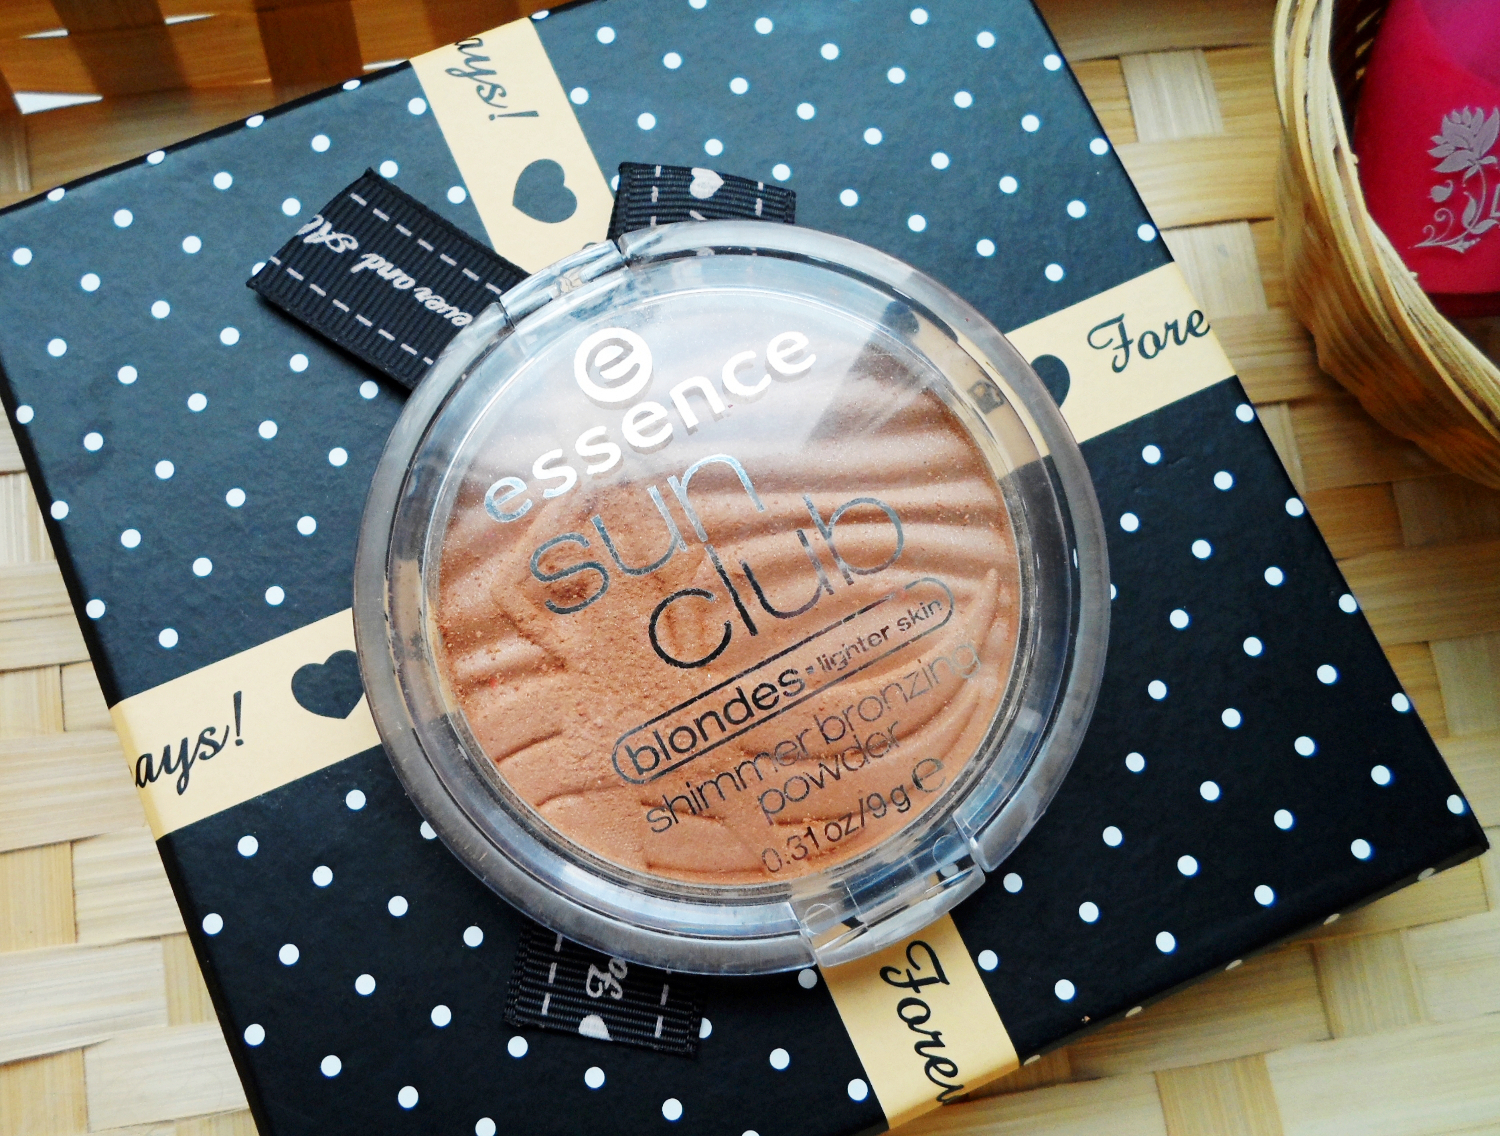 Sun Club shimmer bronzing powder by Essence review and swatches  liz breygel january girl